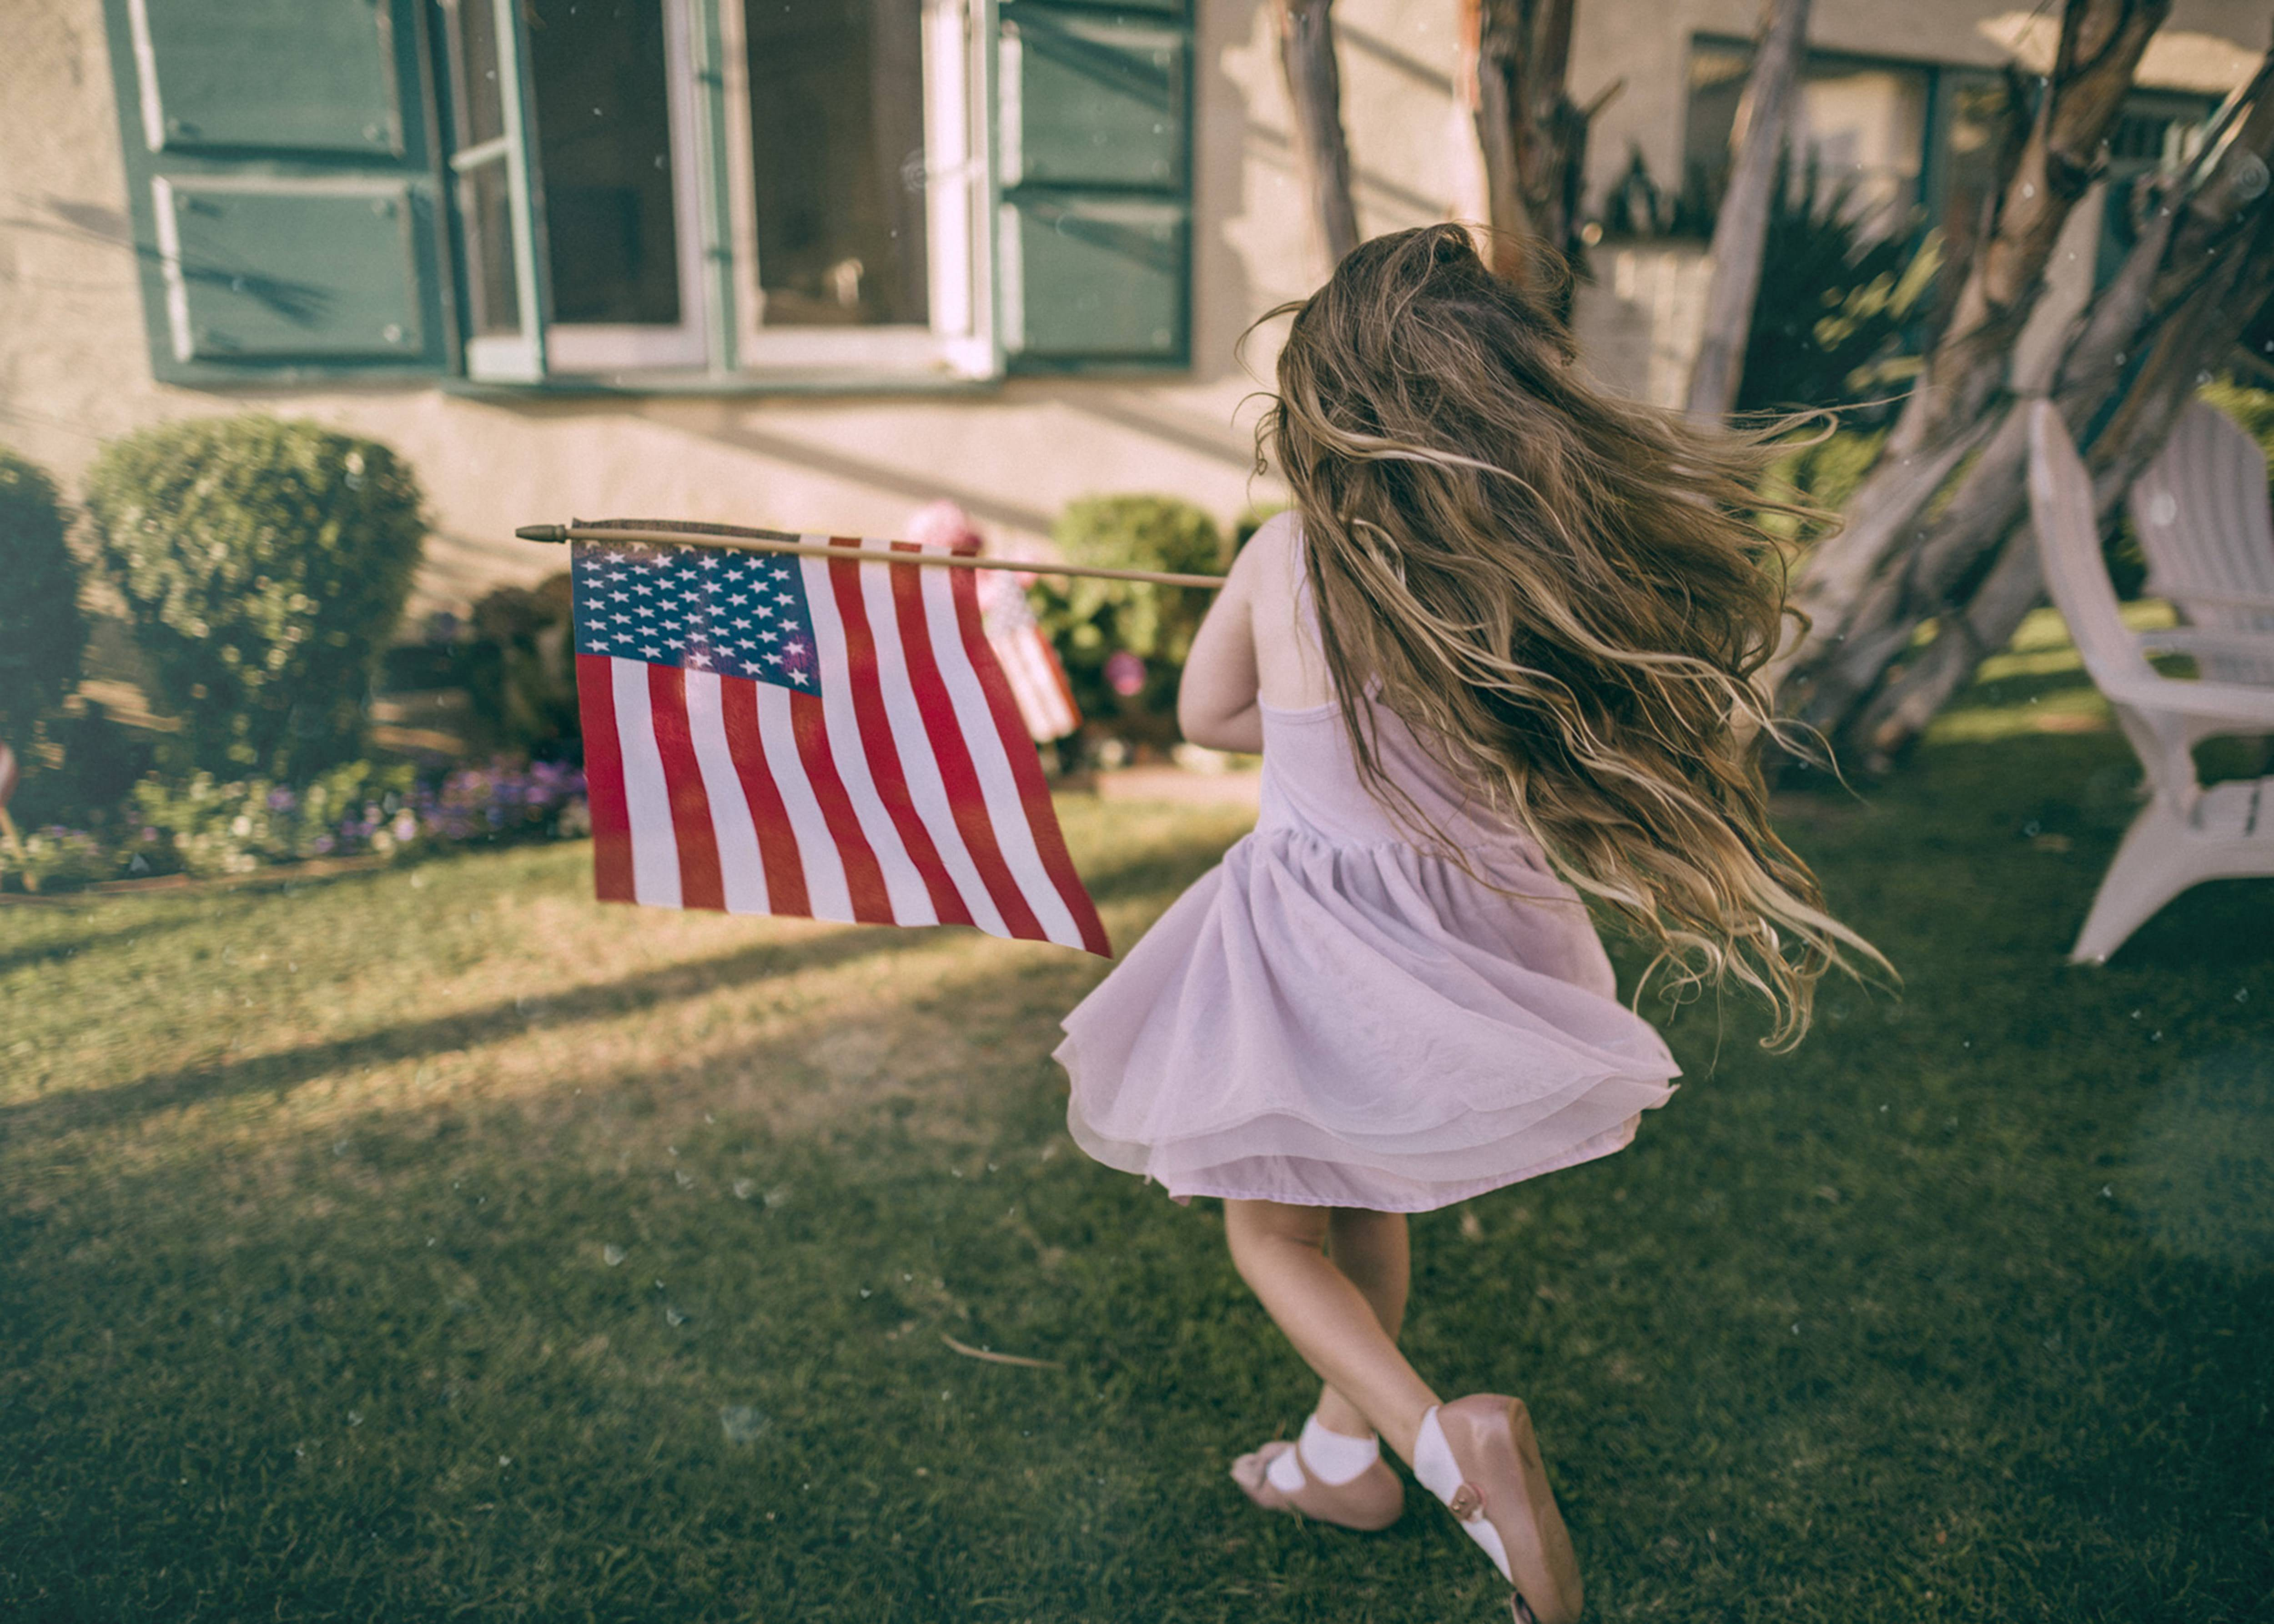 Why Kids Should Love Their Country